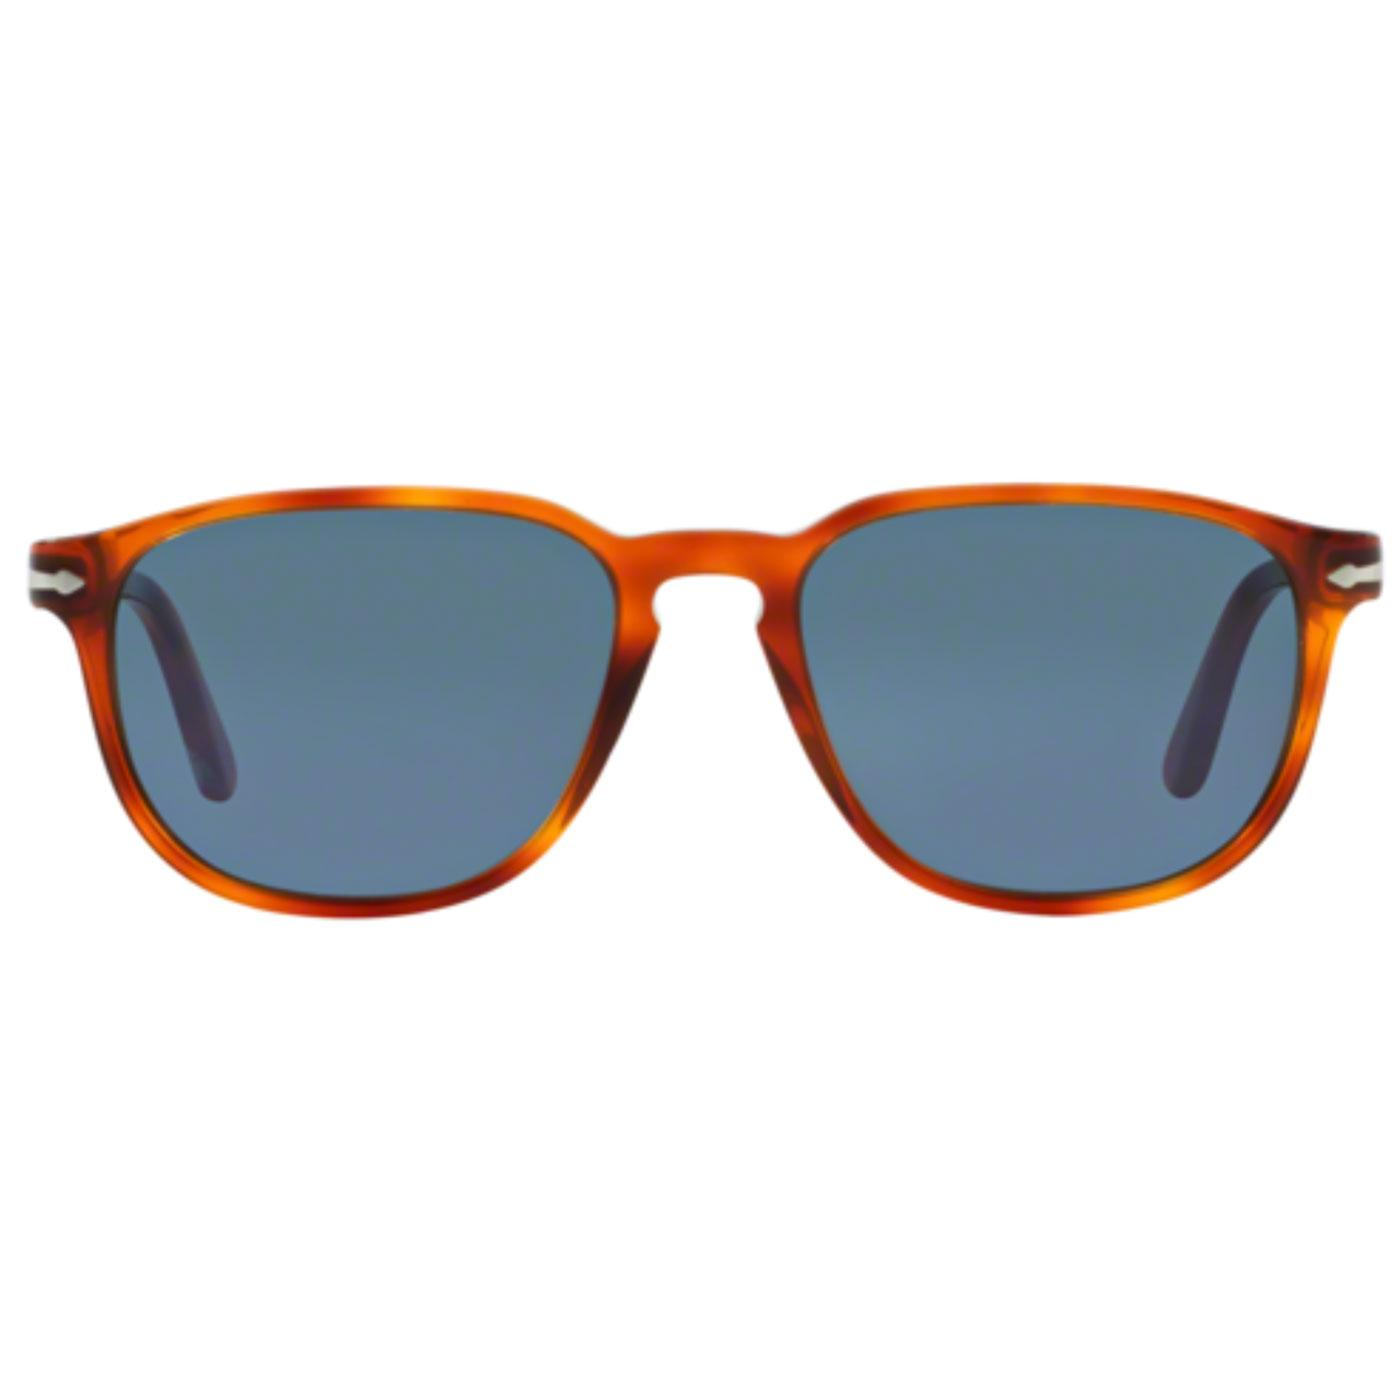 PERSOL Men's Retro 50s Terra Di Siena Sunglasses